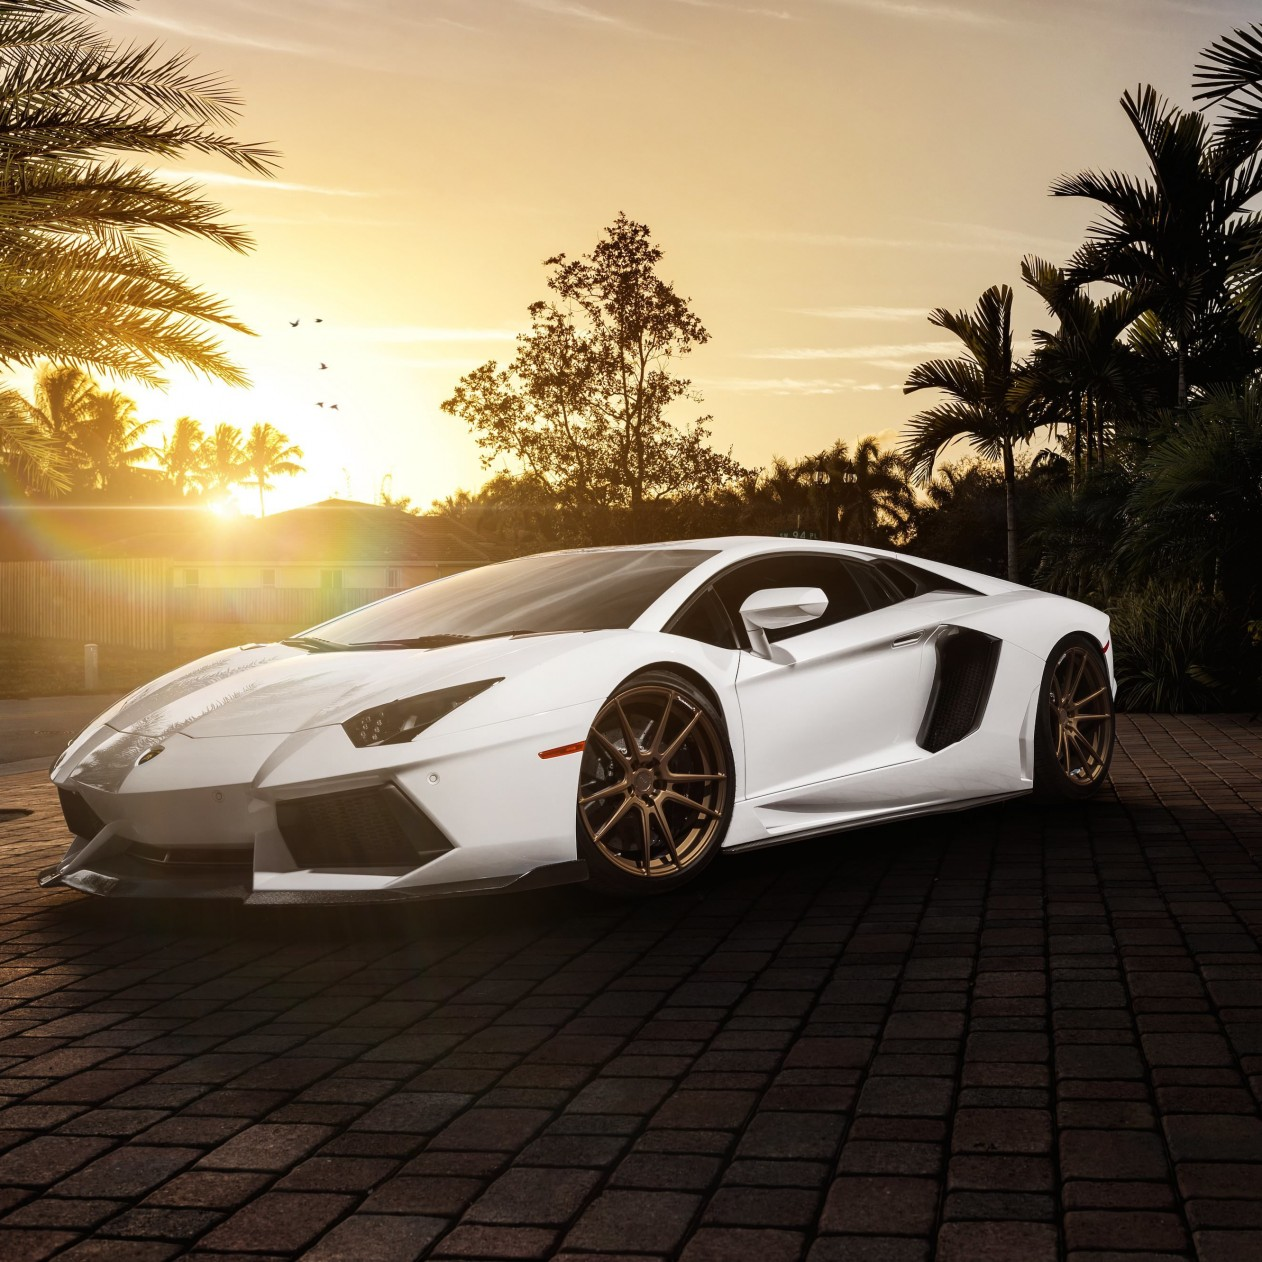 Lamborghini Aventador LP700-4 in White Wallpaper for Apple iPad mini